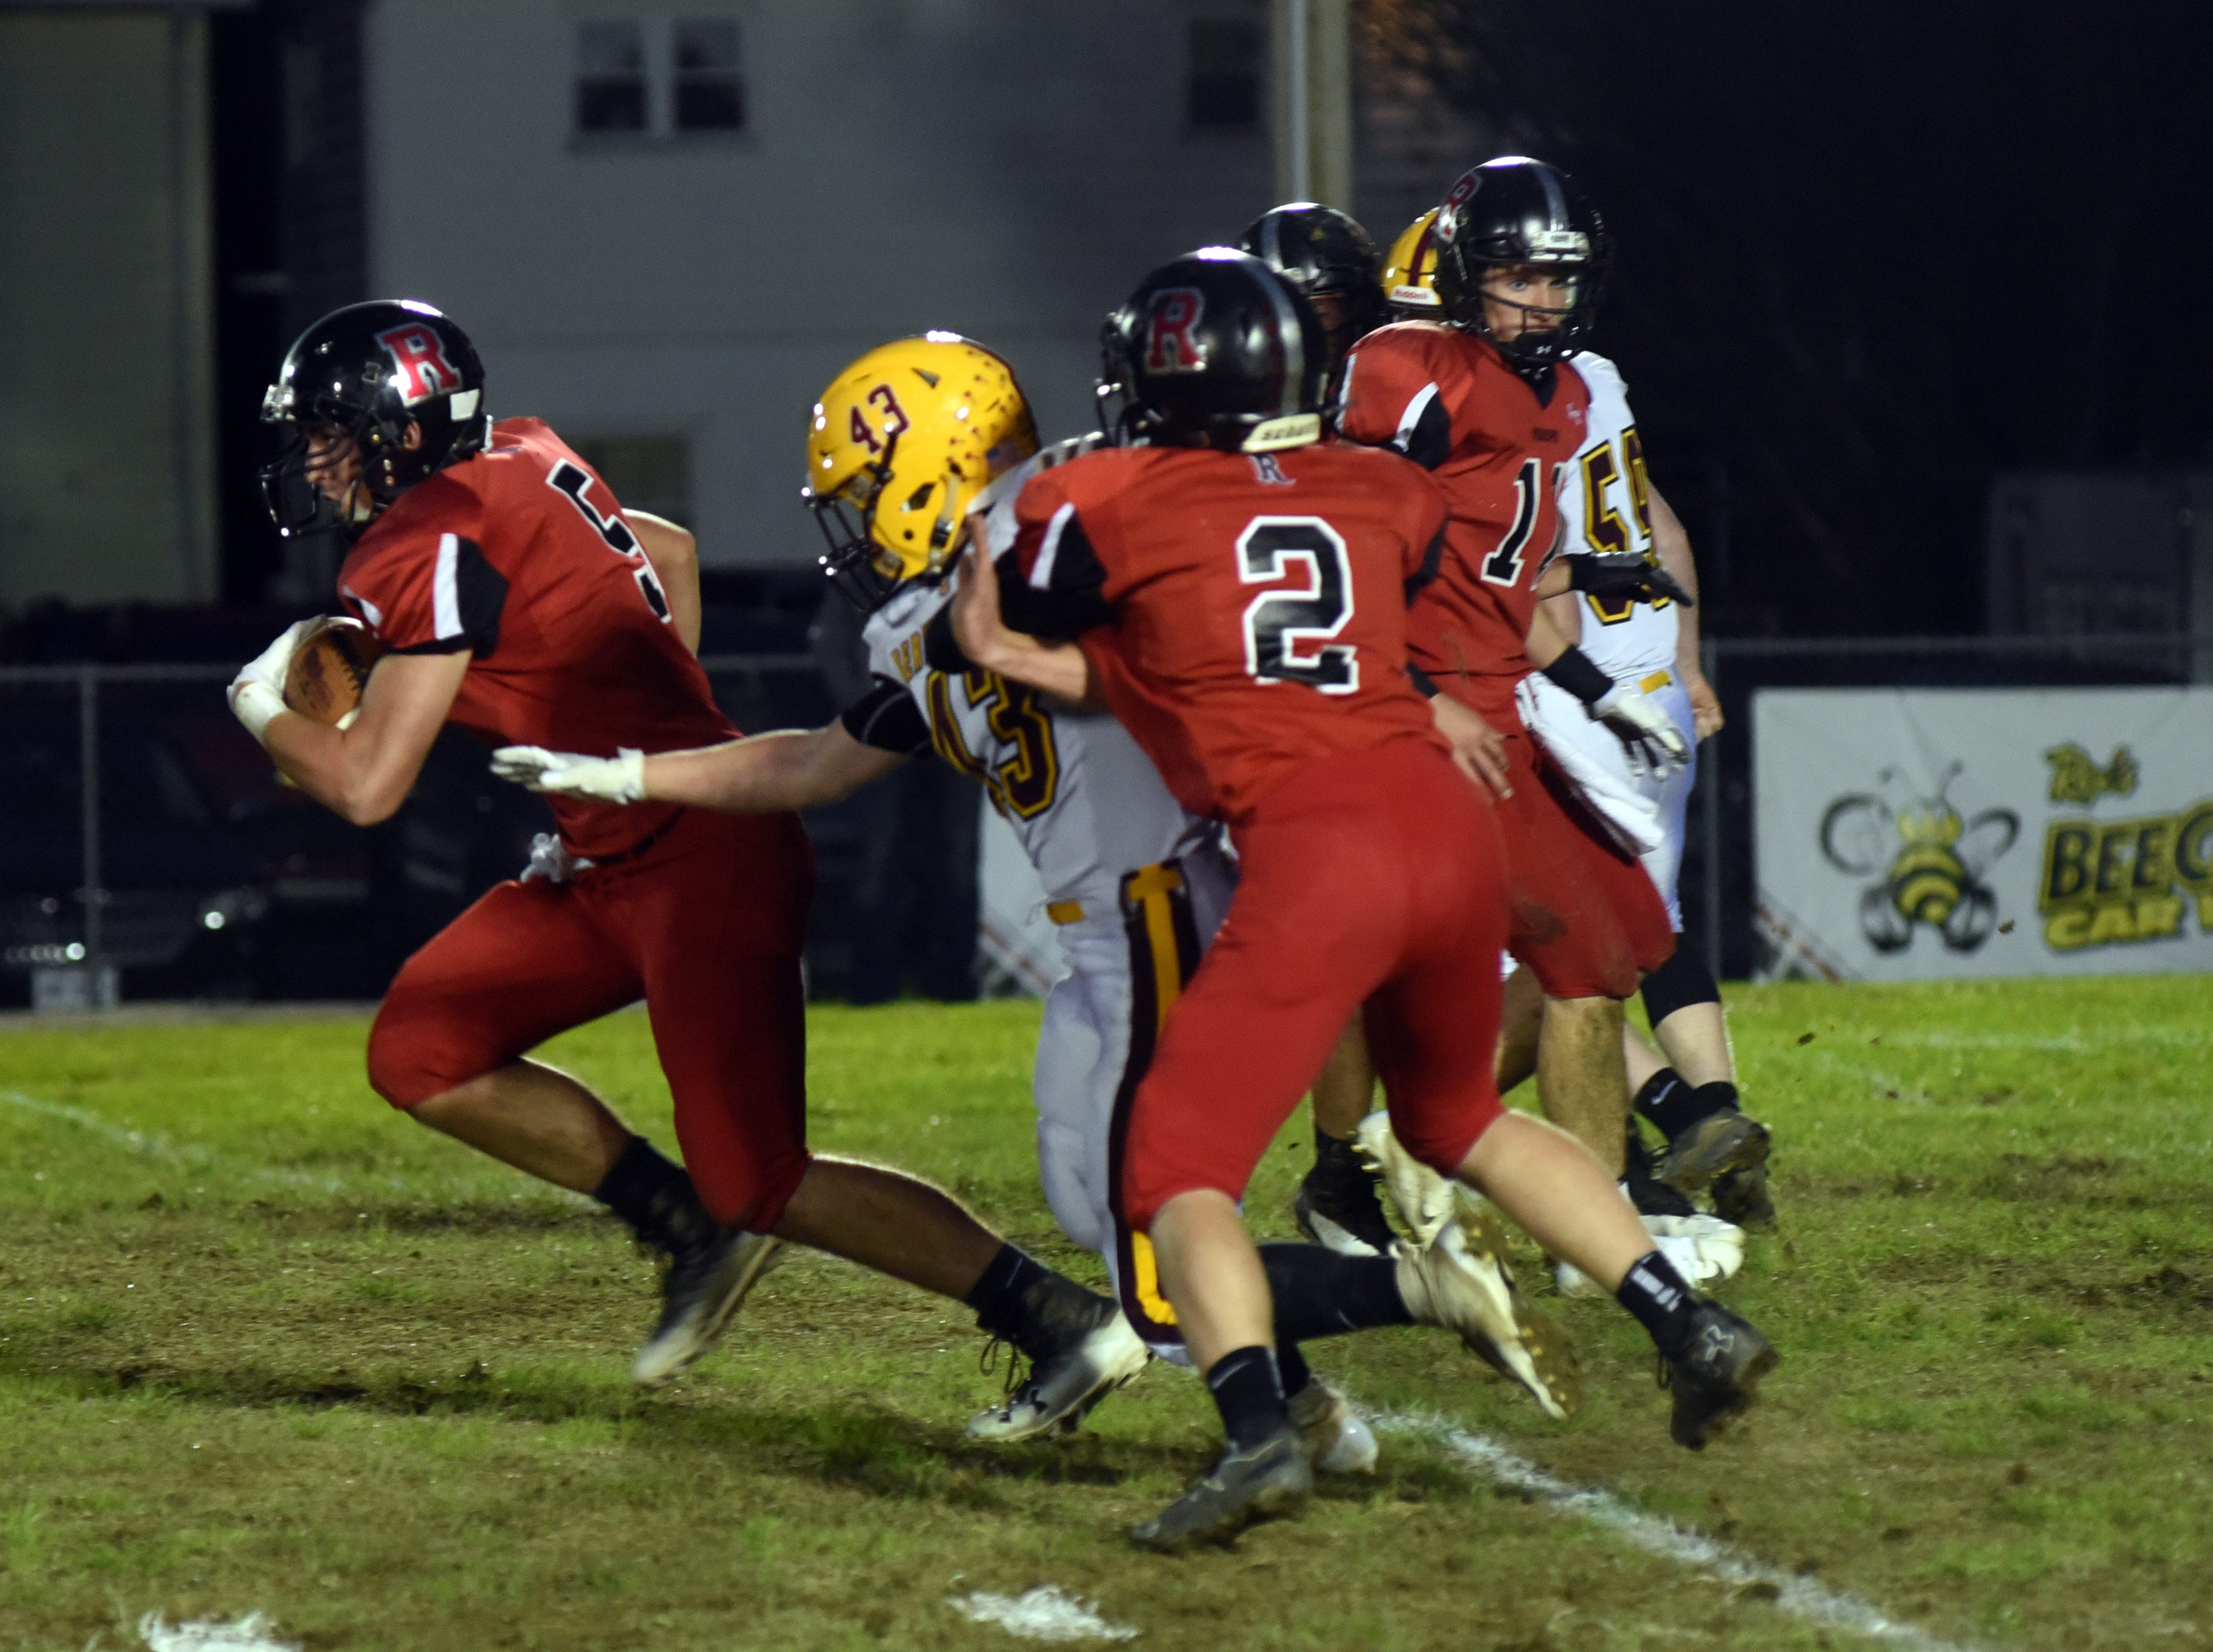 Rosecrans' Marcus Browning runs past a Berne Union defender in Berne Union's 41-14 win on Friday.